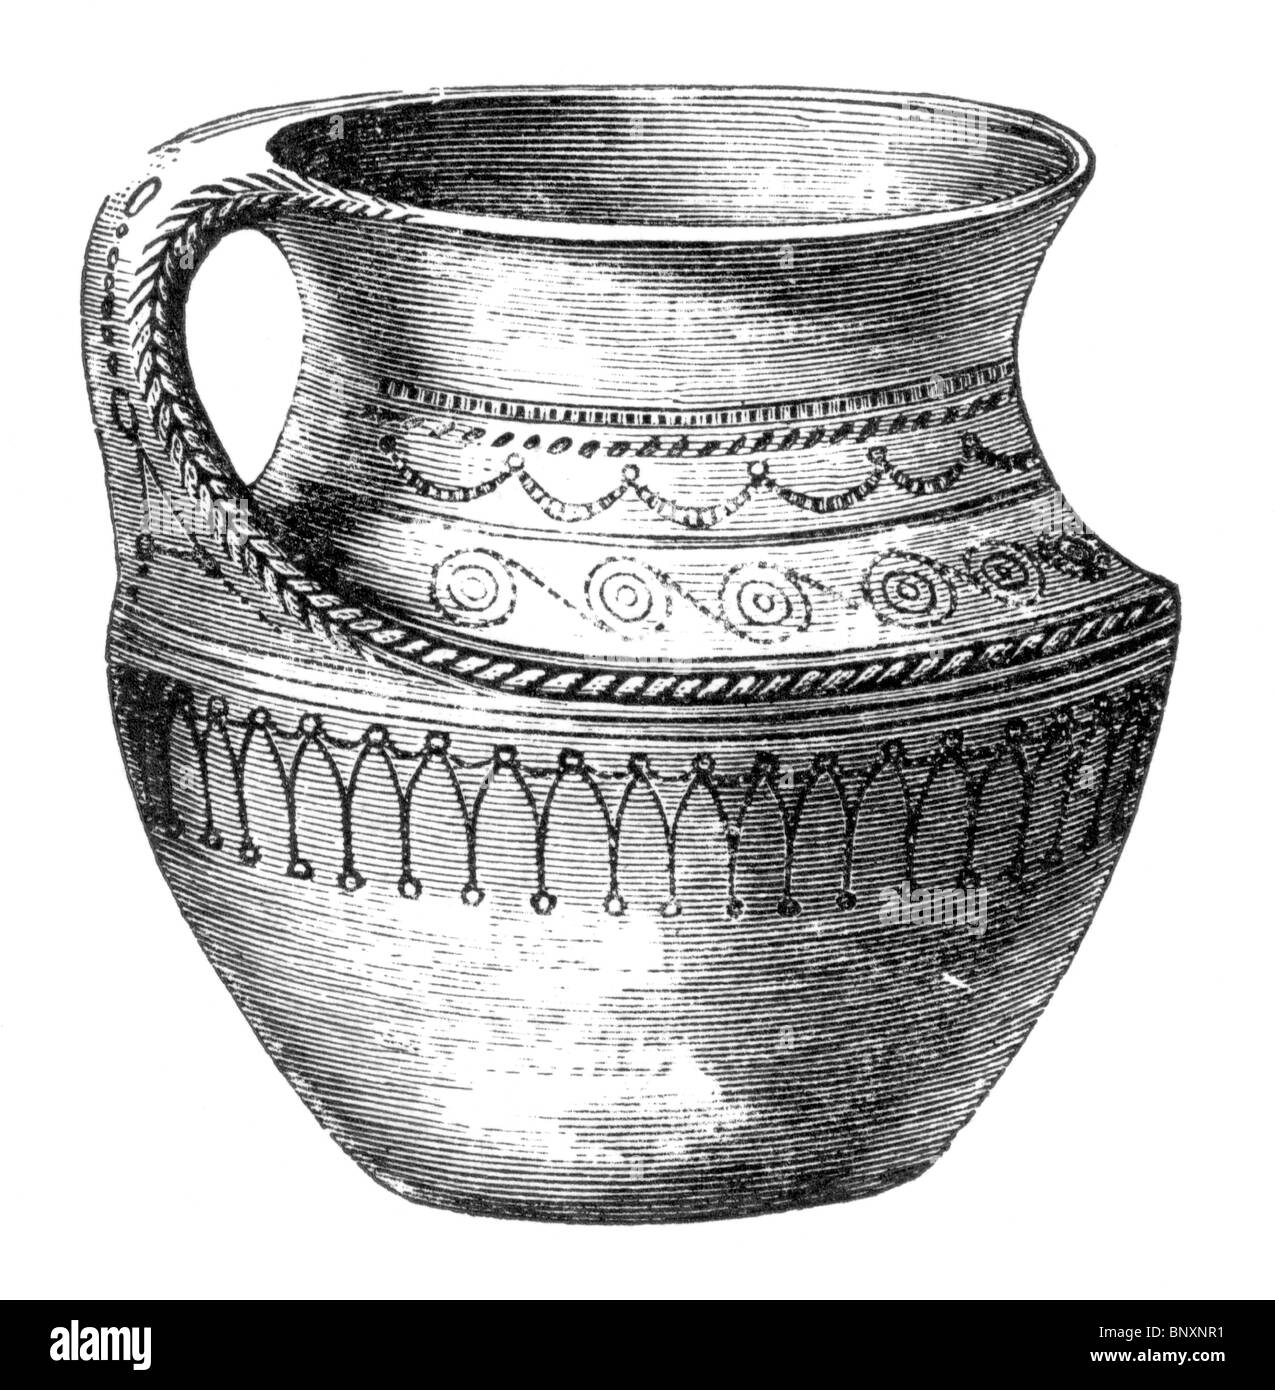 Black and White Illustration of a 8th of 9th century Scandanavian Earthenware Ewer - Stock Image